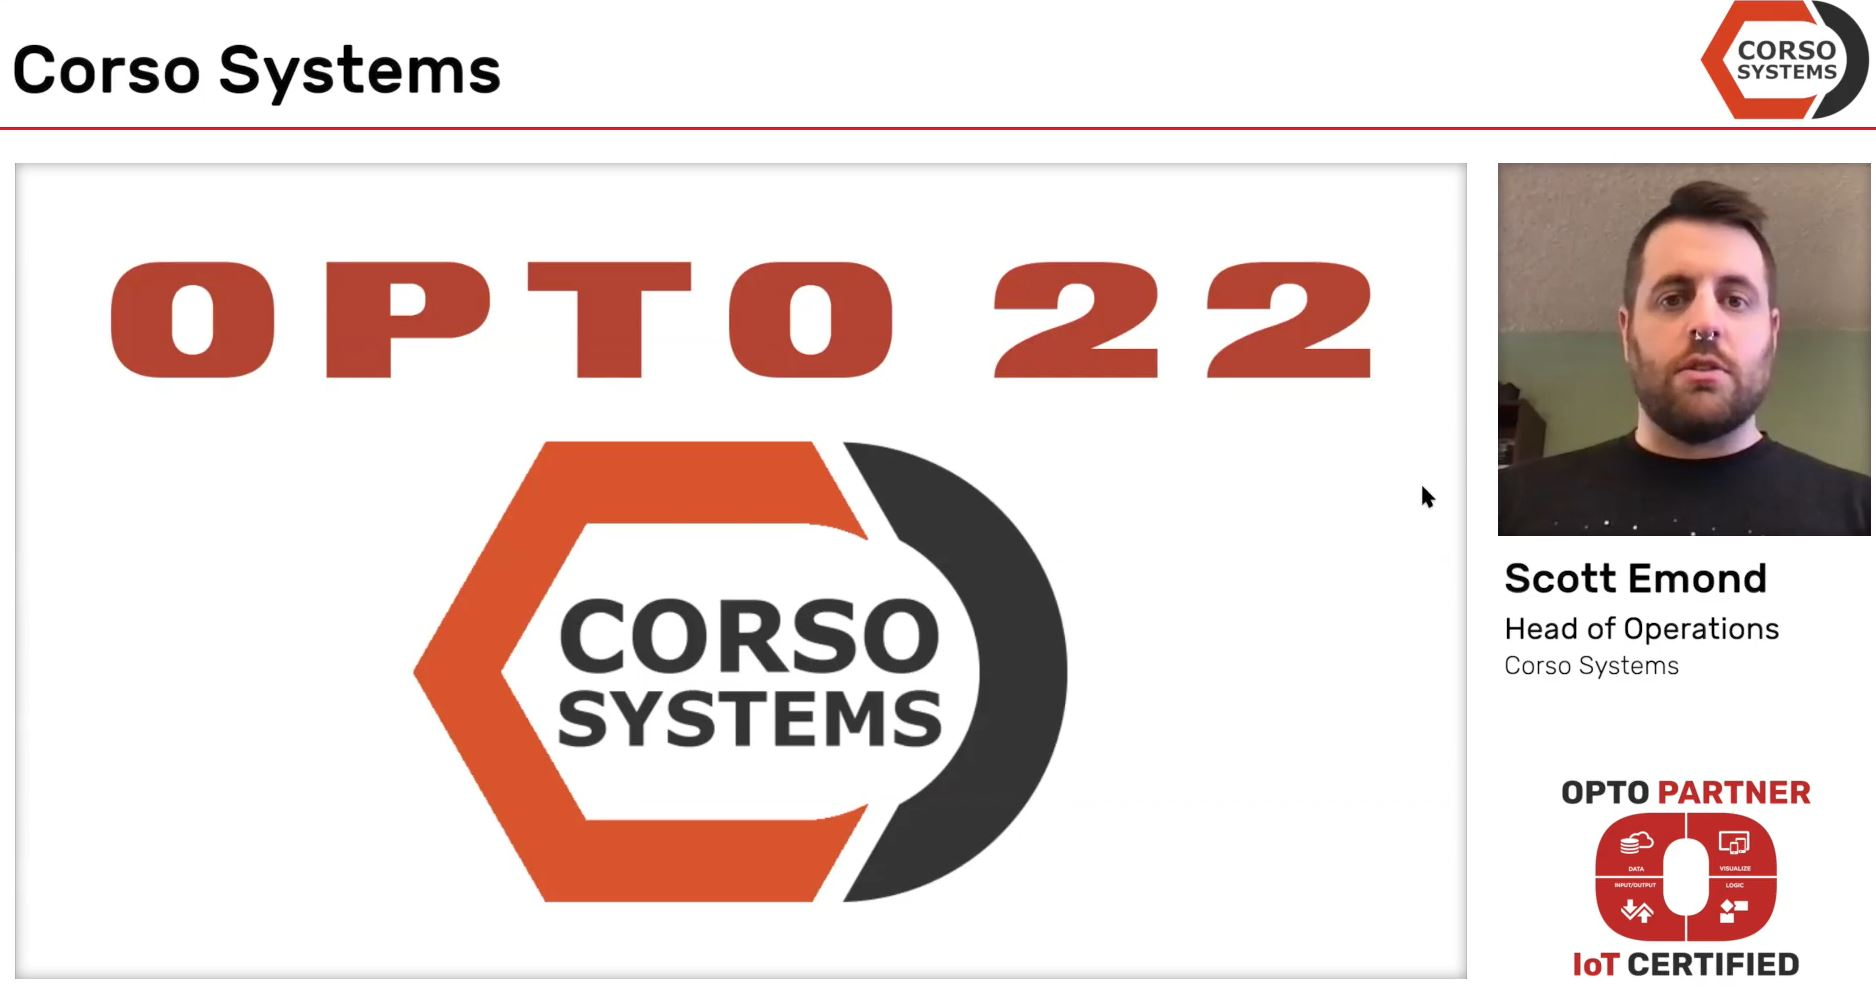 Watch the Latest OptoPartner Video - Corso Systems